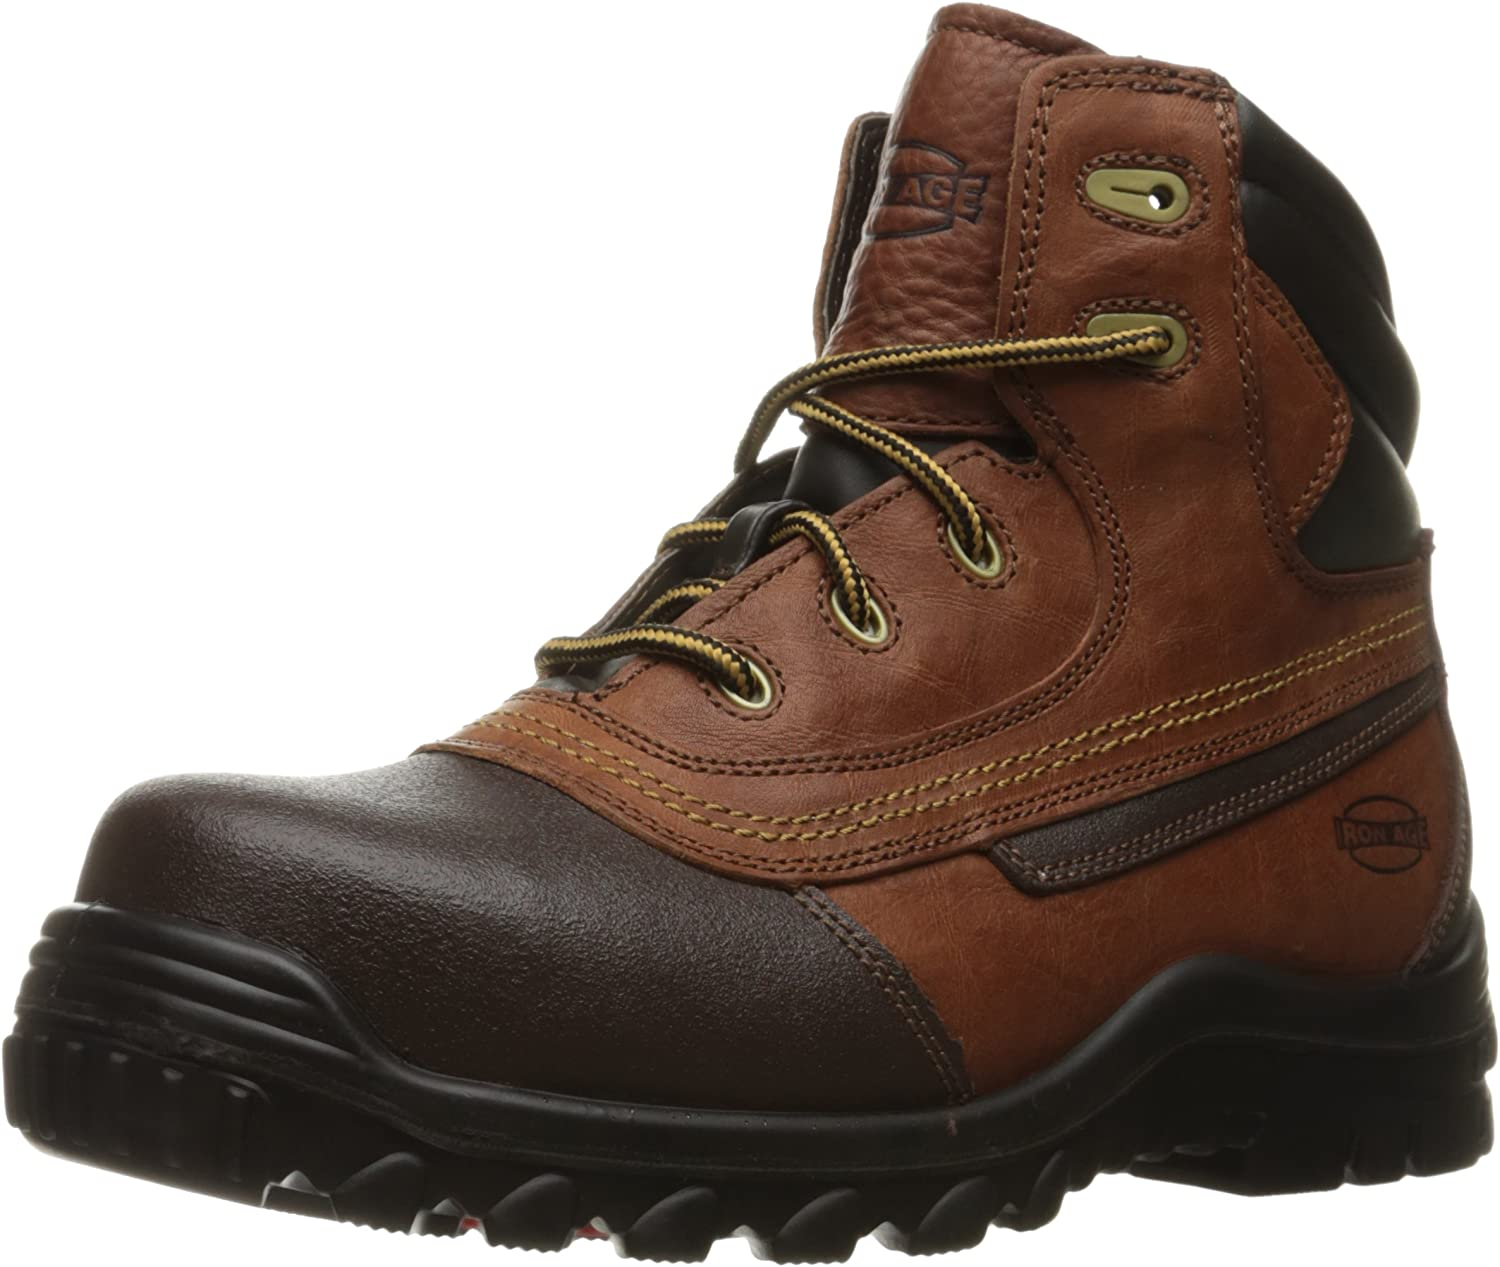 Iron Age Max 89% OFF Men's Max 58% OFF Ia5501 Backstop Industrial Bo Work Construction